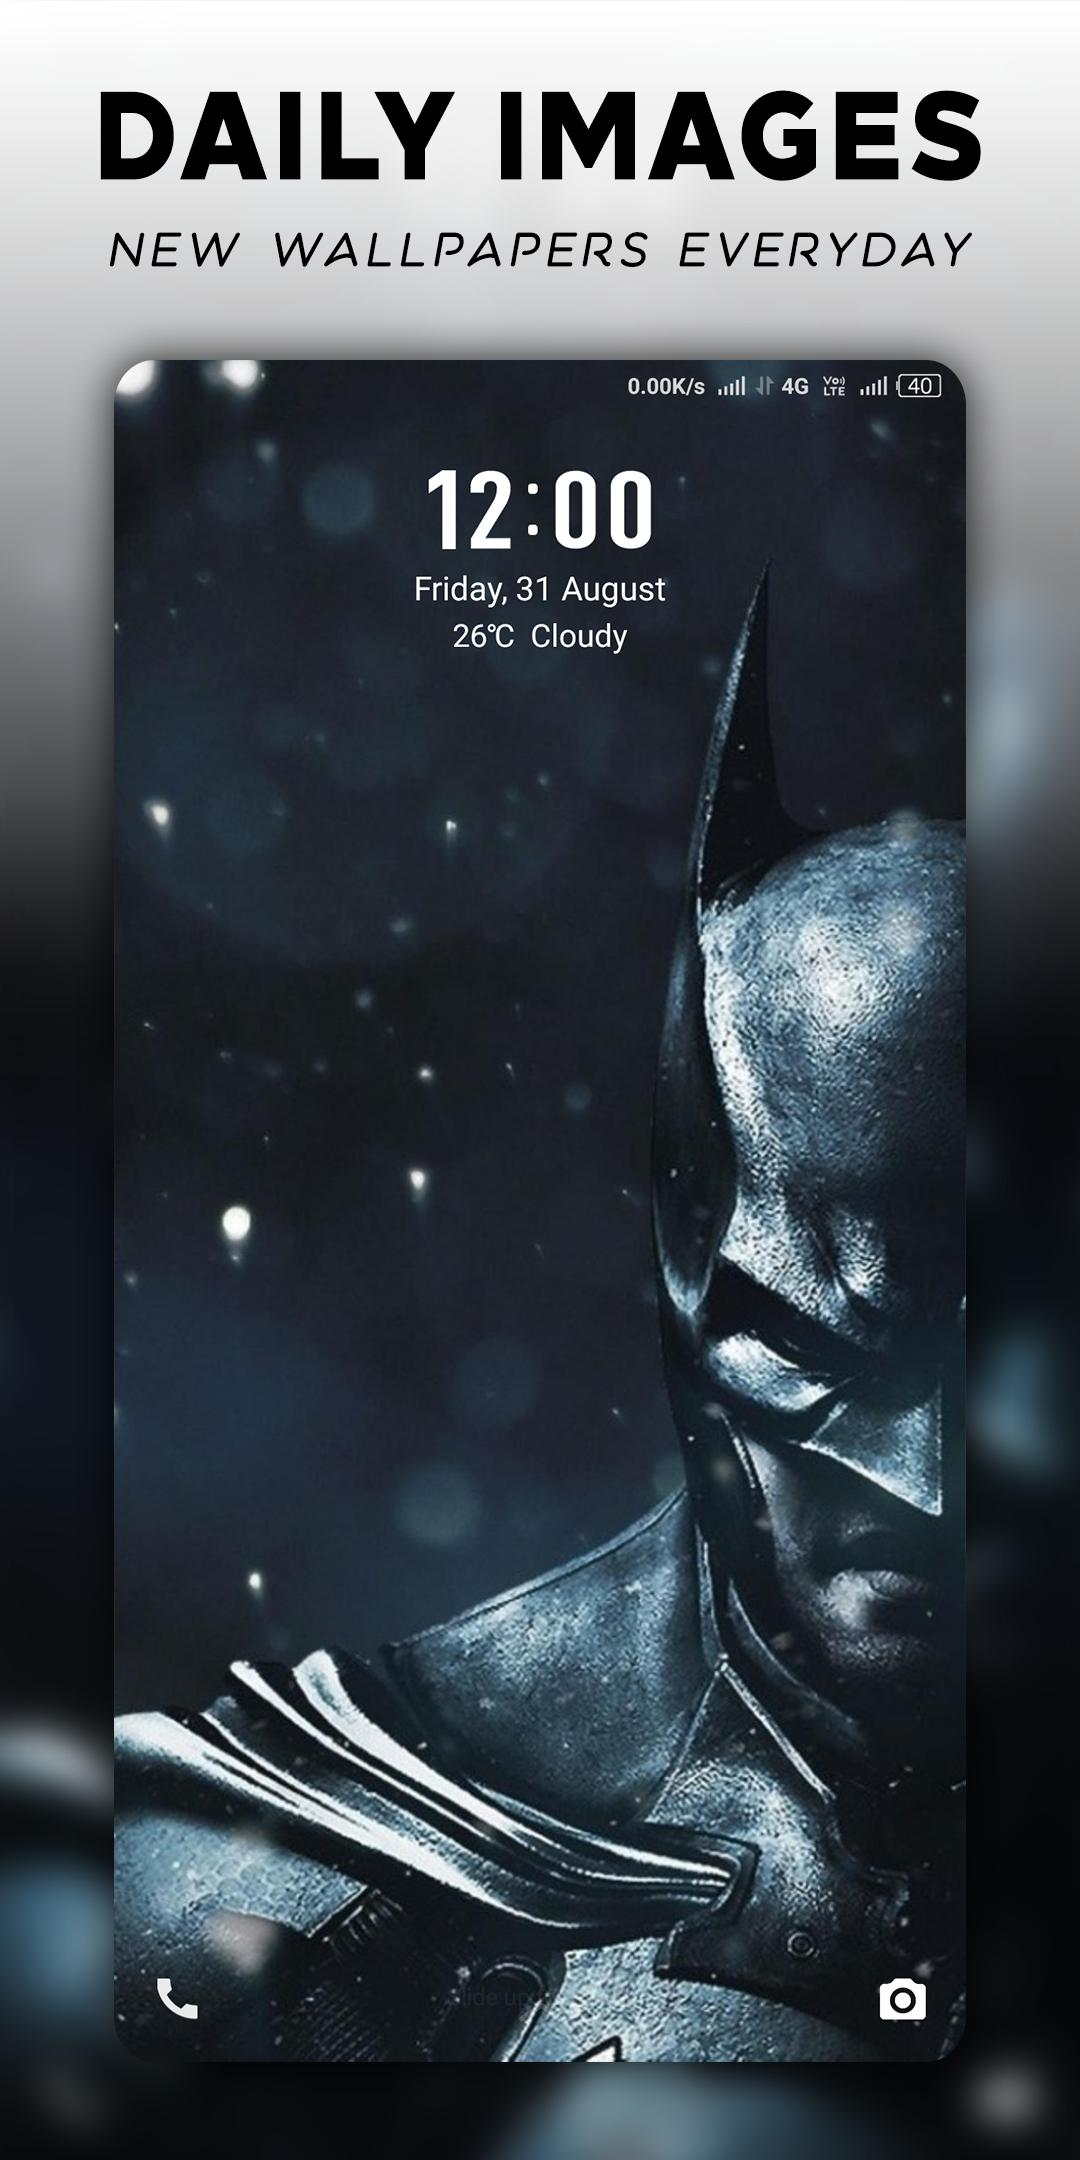 4k Superheroes Wallpapers Live Wallpaper Changer For Android Apk Download